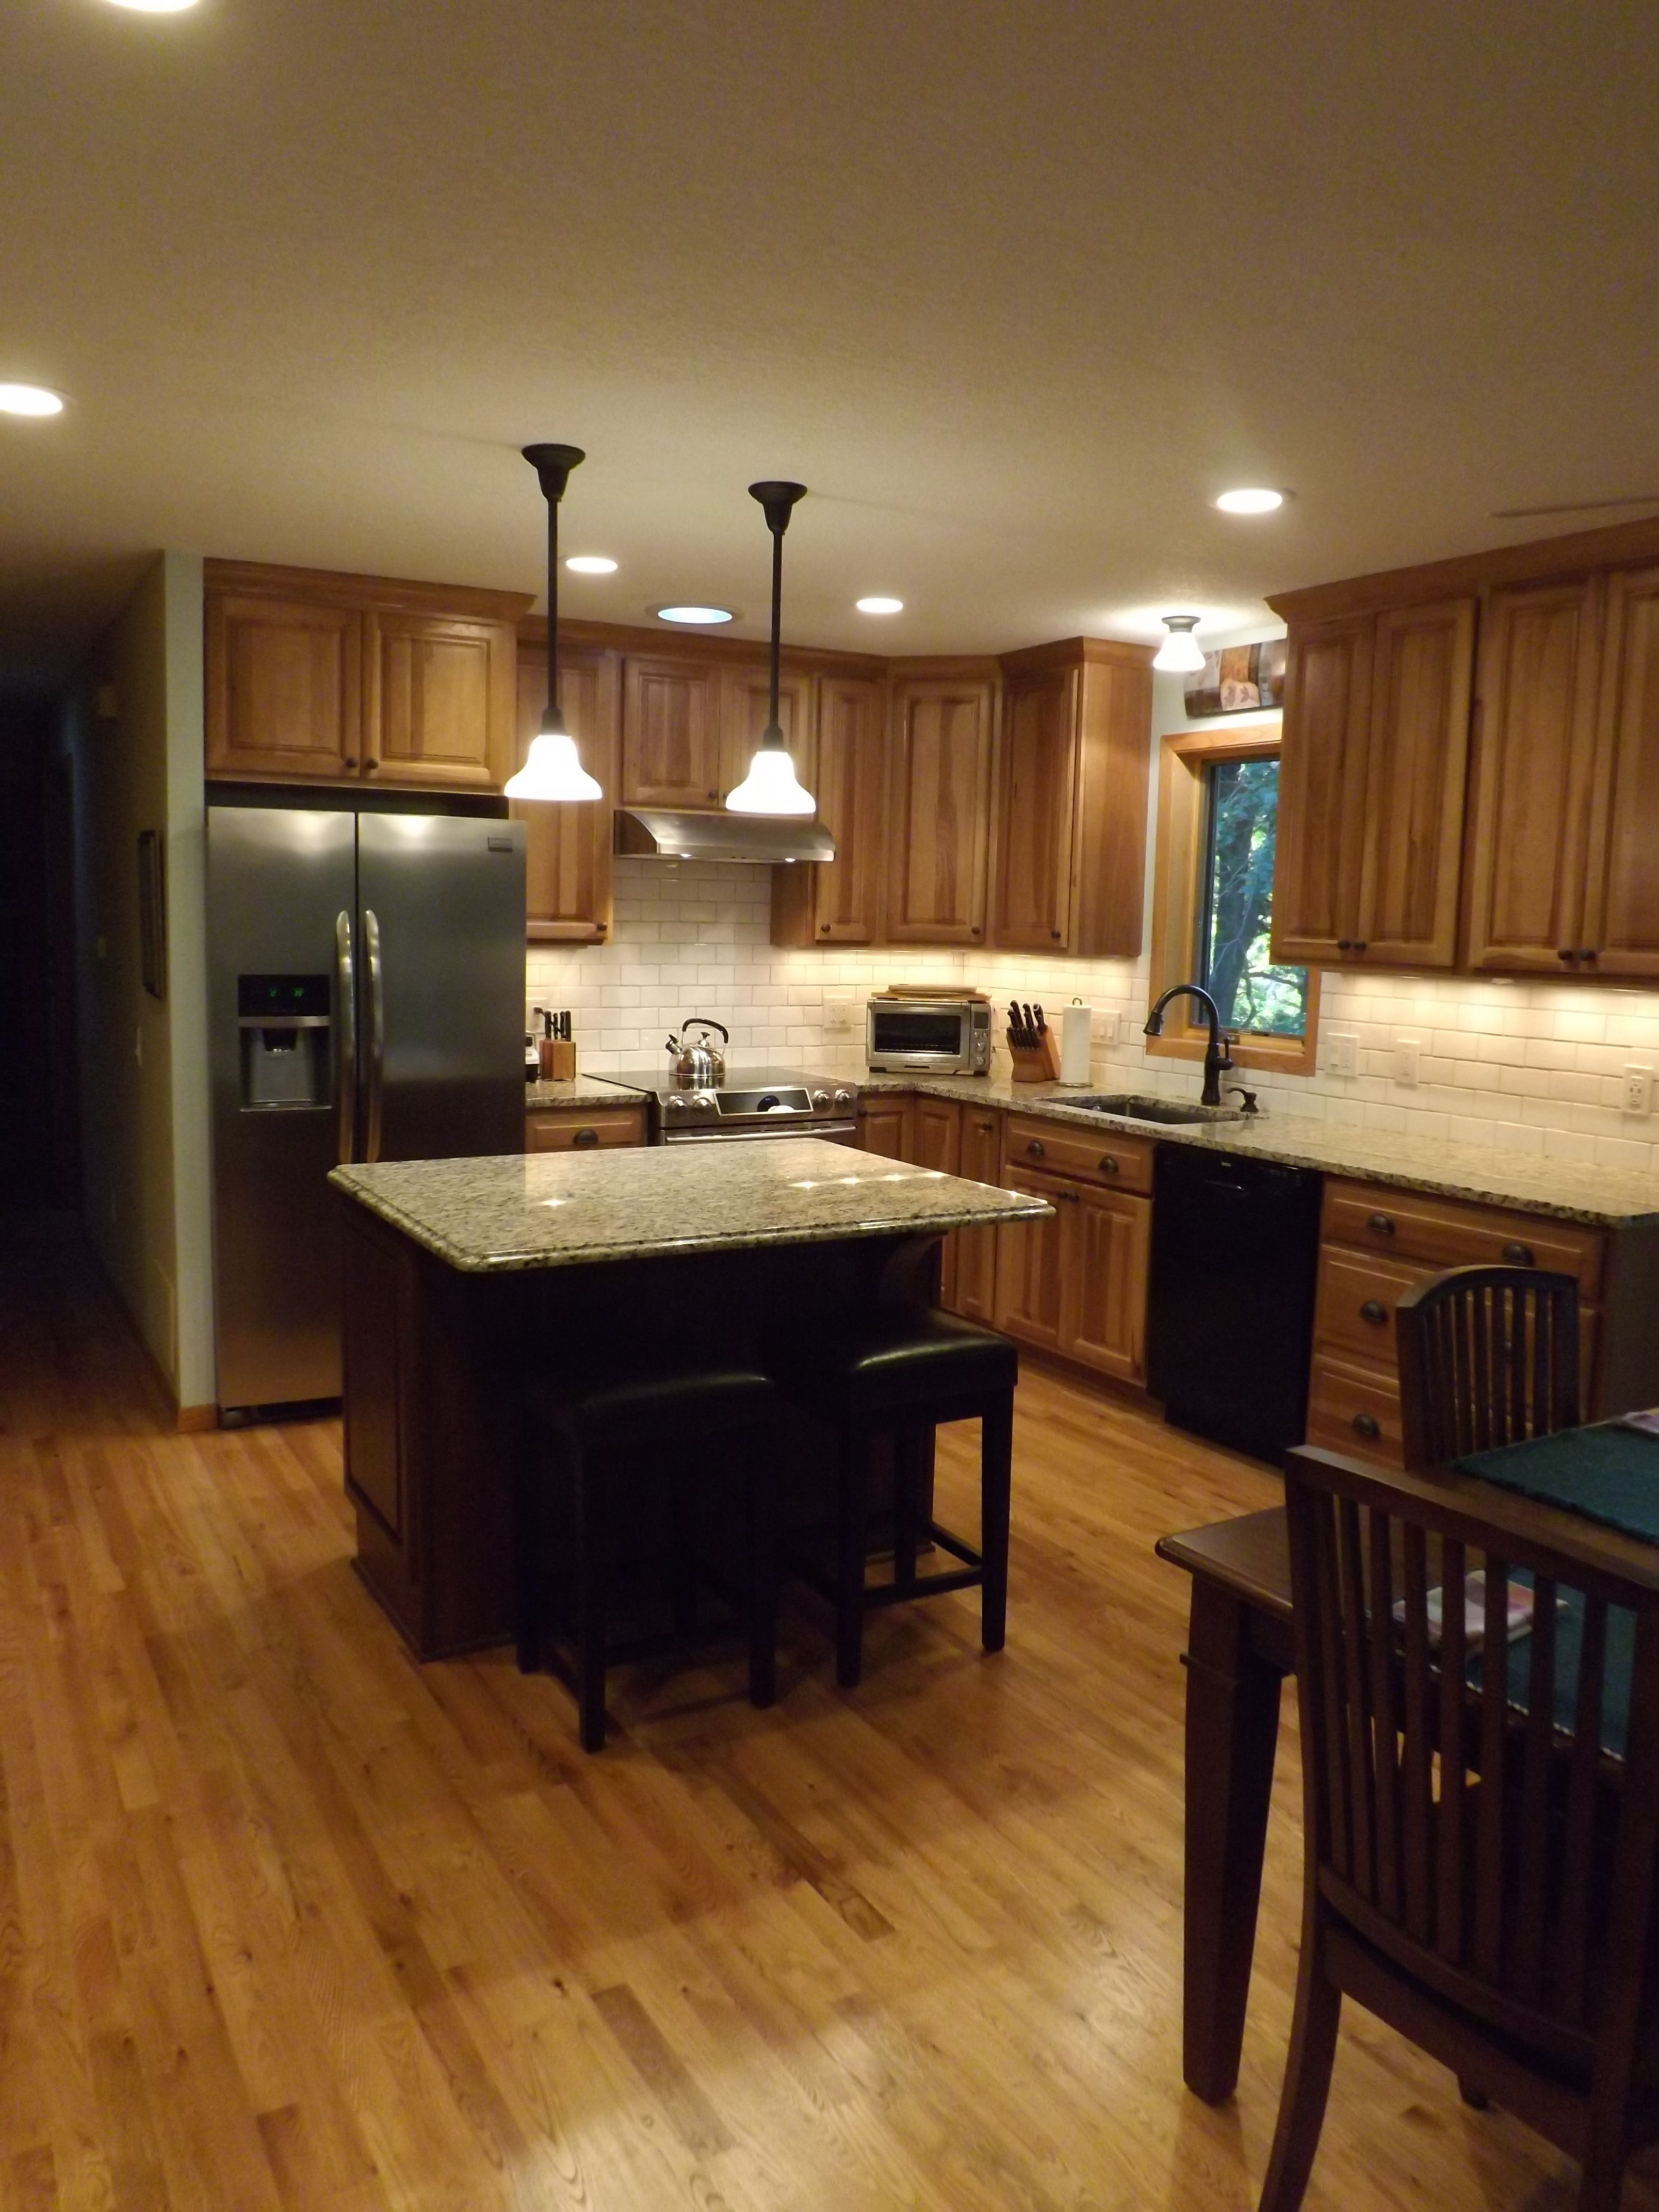 Kitchen With Granite Counter Tops Hickory Cabinets And